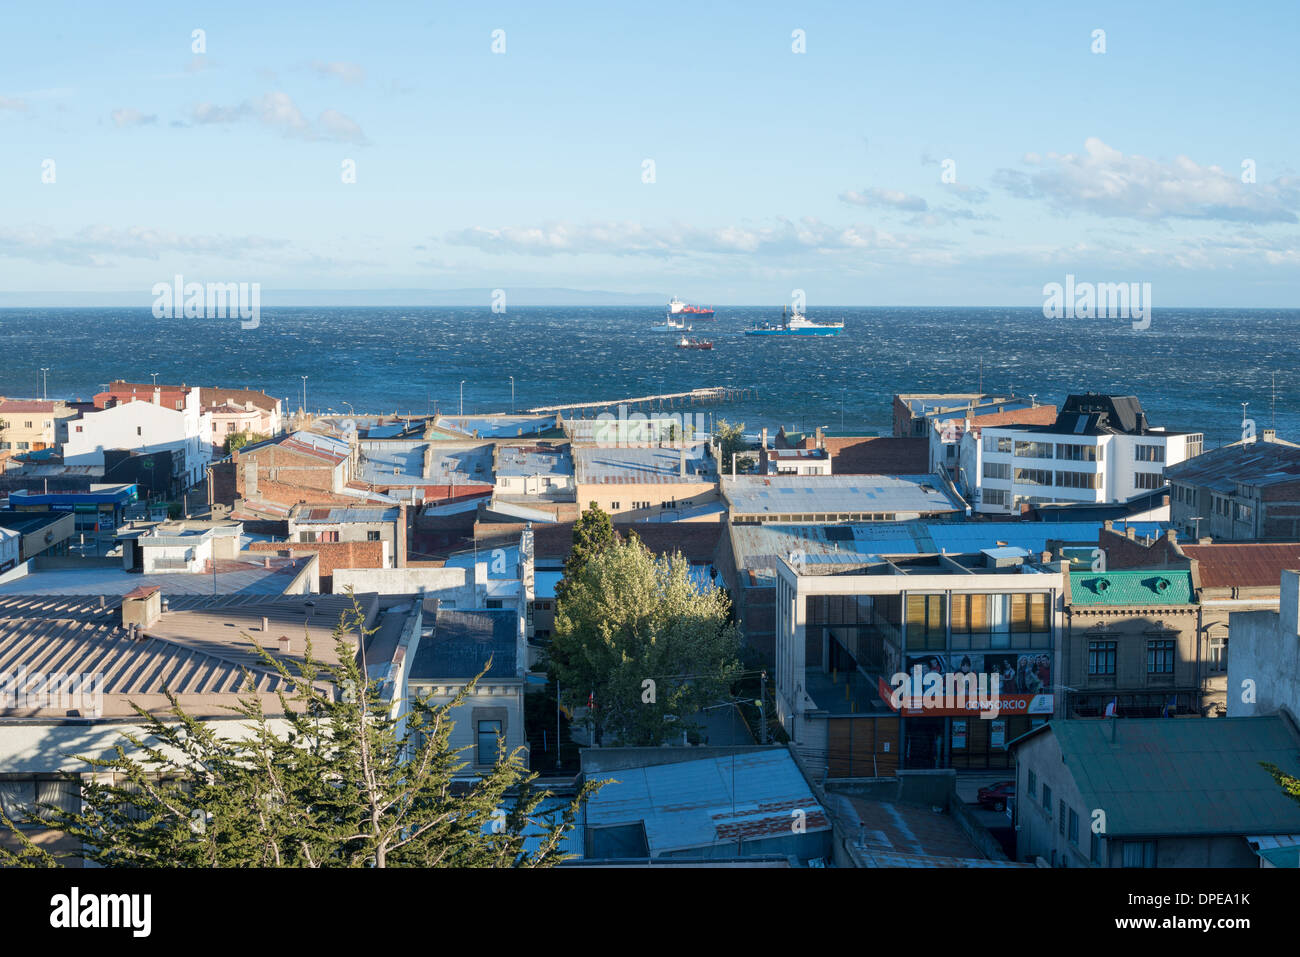 PUNTA ARENAS, Chile - A strong wind whips up whitecaps on the Strait of Magellan as seen over the rooftops of Punta Arenas, Chile. The city is the largest south of the 46th parallel south and capital city of Chile's southernmost region of Magallanes and Antartica Chilena. - Stock Image